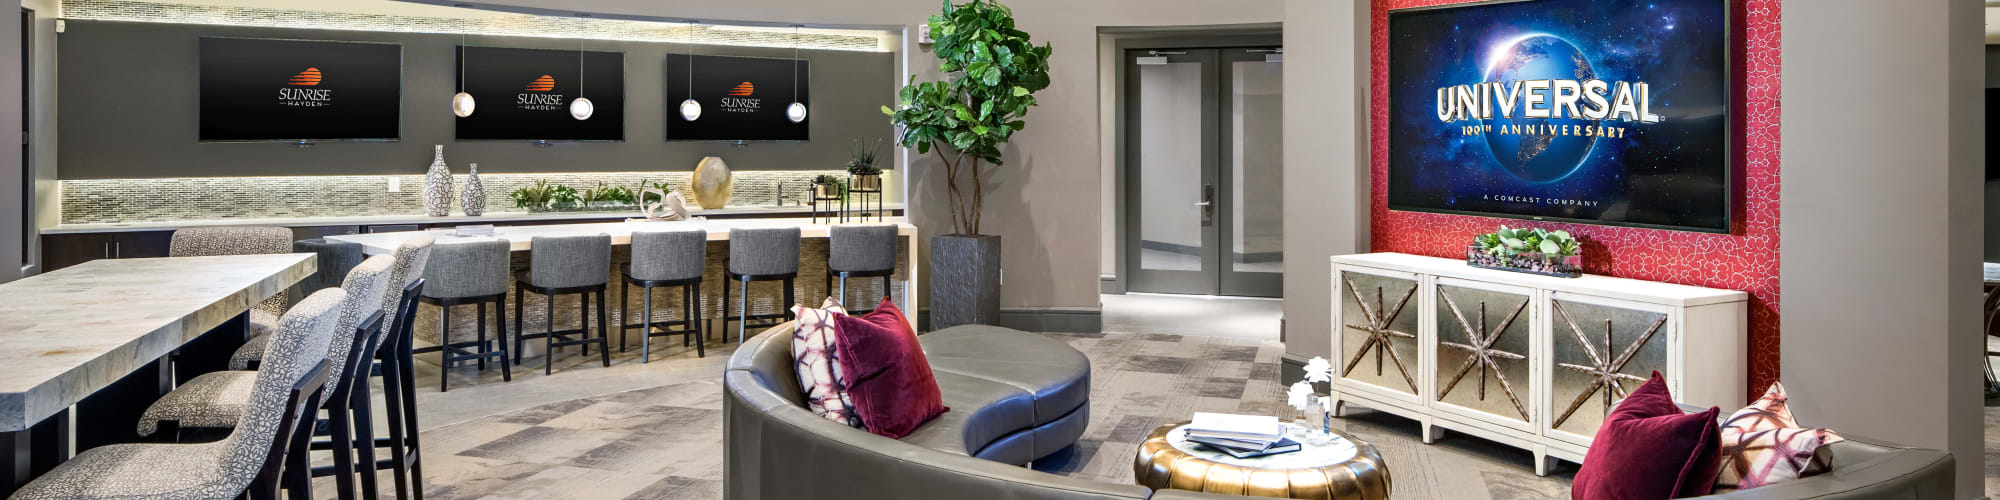 Amenities at The Core Scottsdale in Scottsdale, Arizona